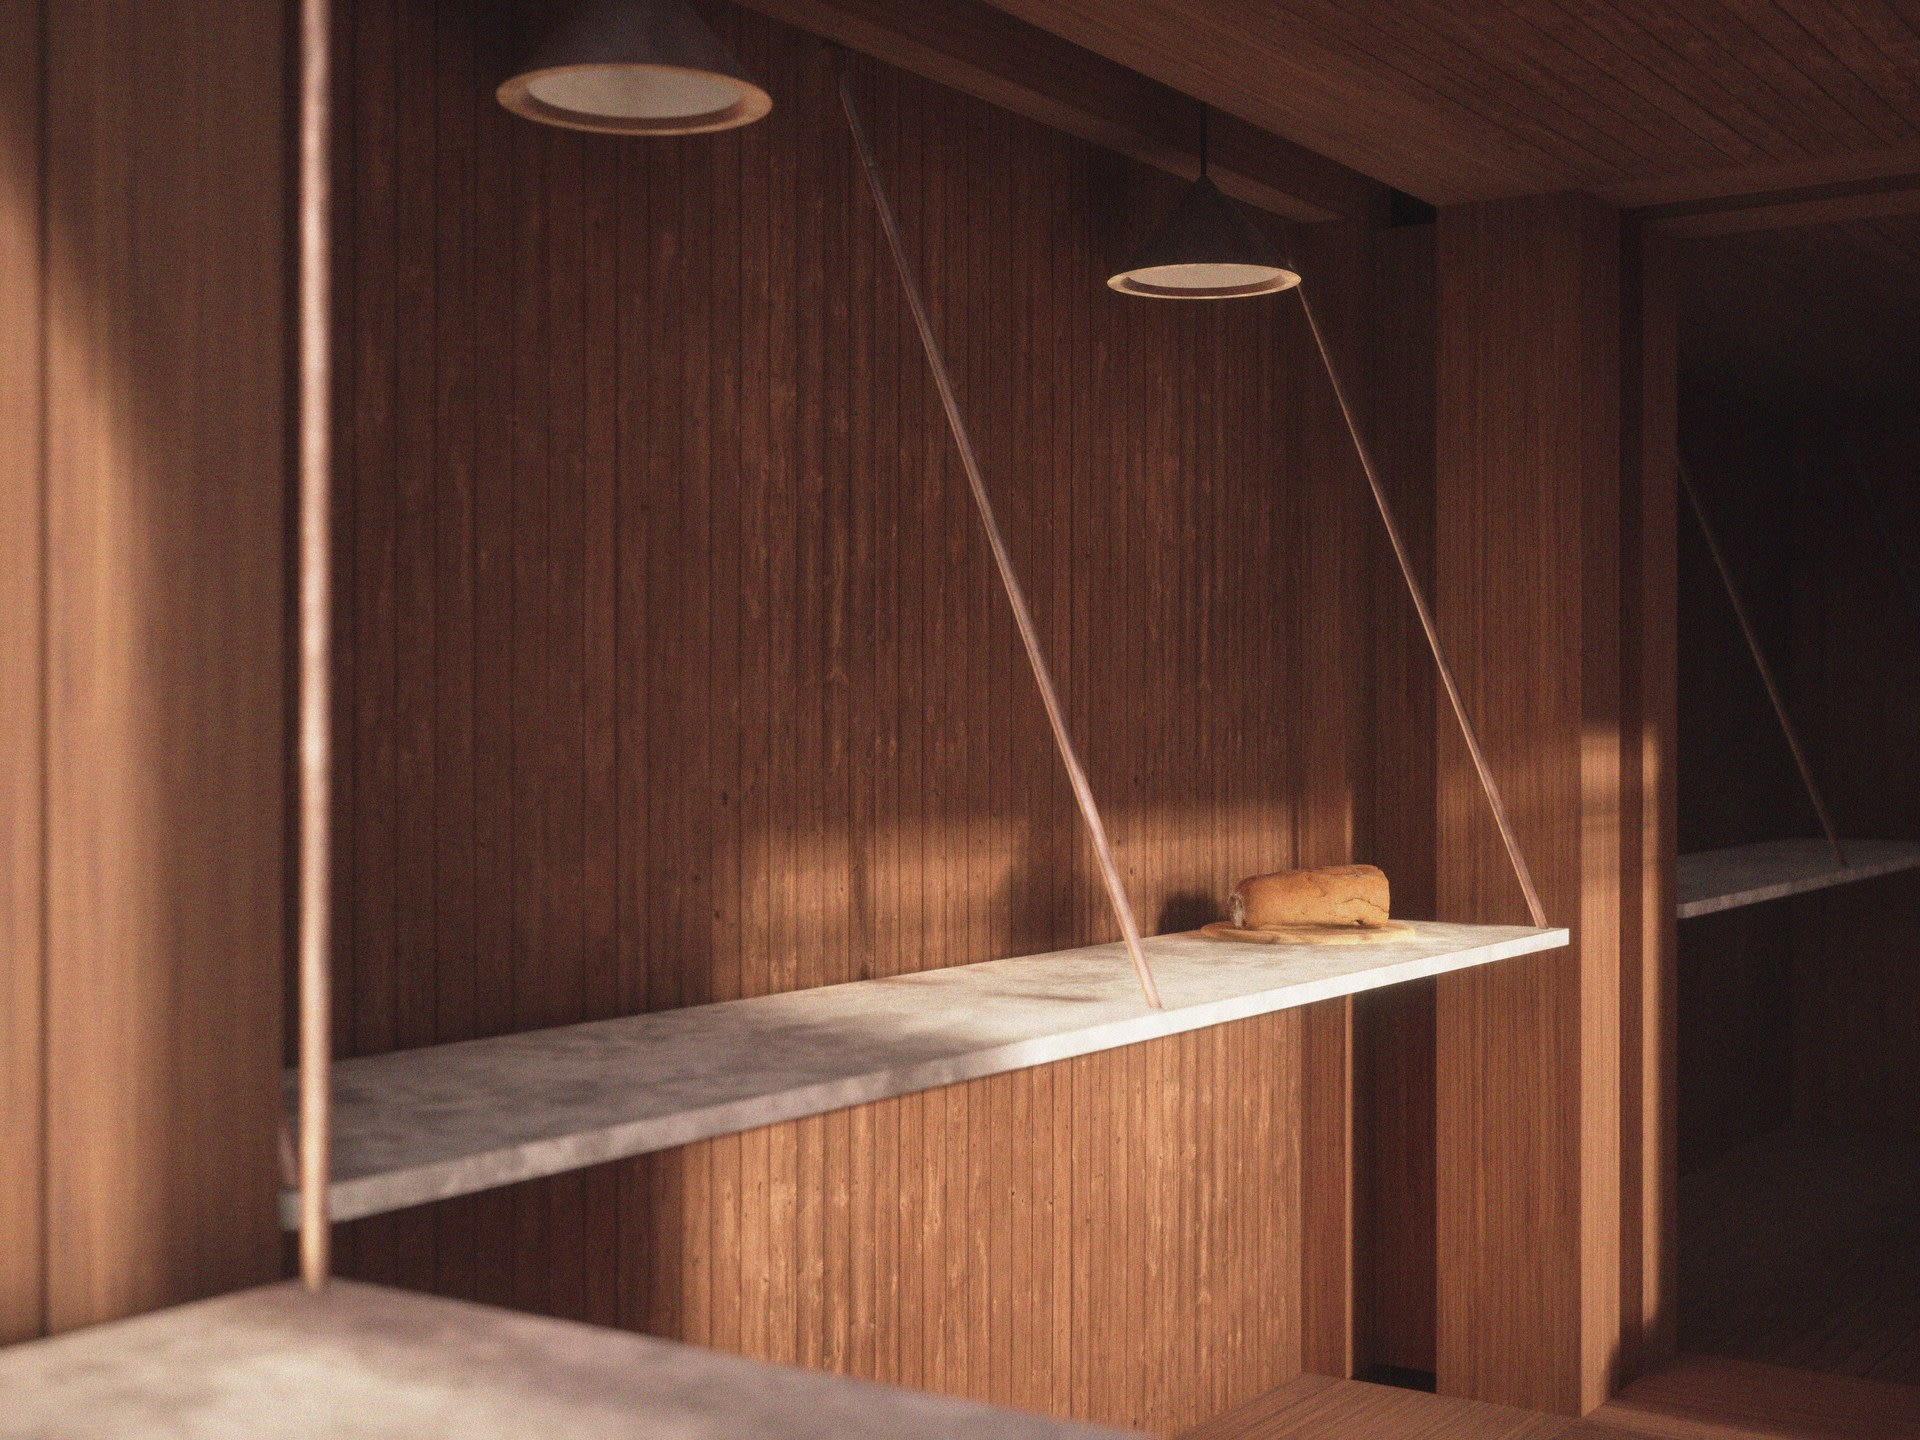 The copper wires and thin white counter create a tension sitting next to the large vertical structural elements